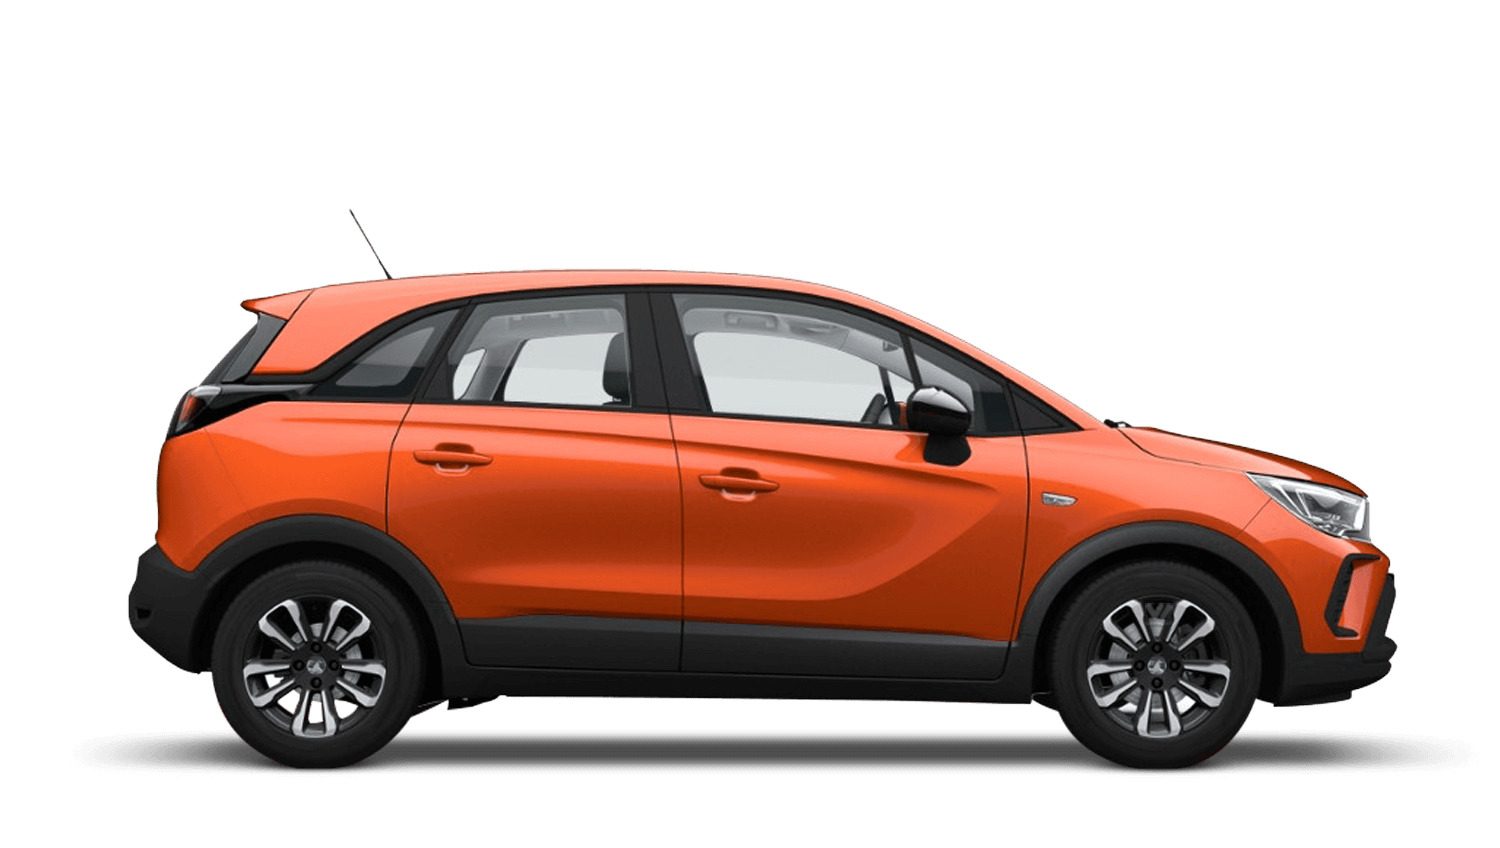 New Crossland with Personal Contract Purchase (PCP)*